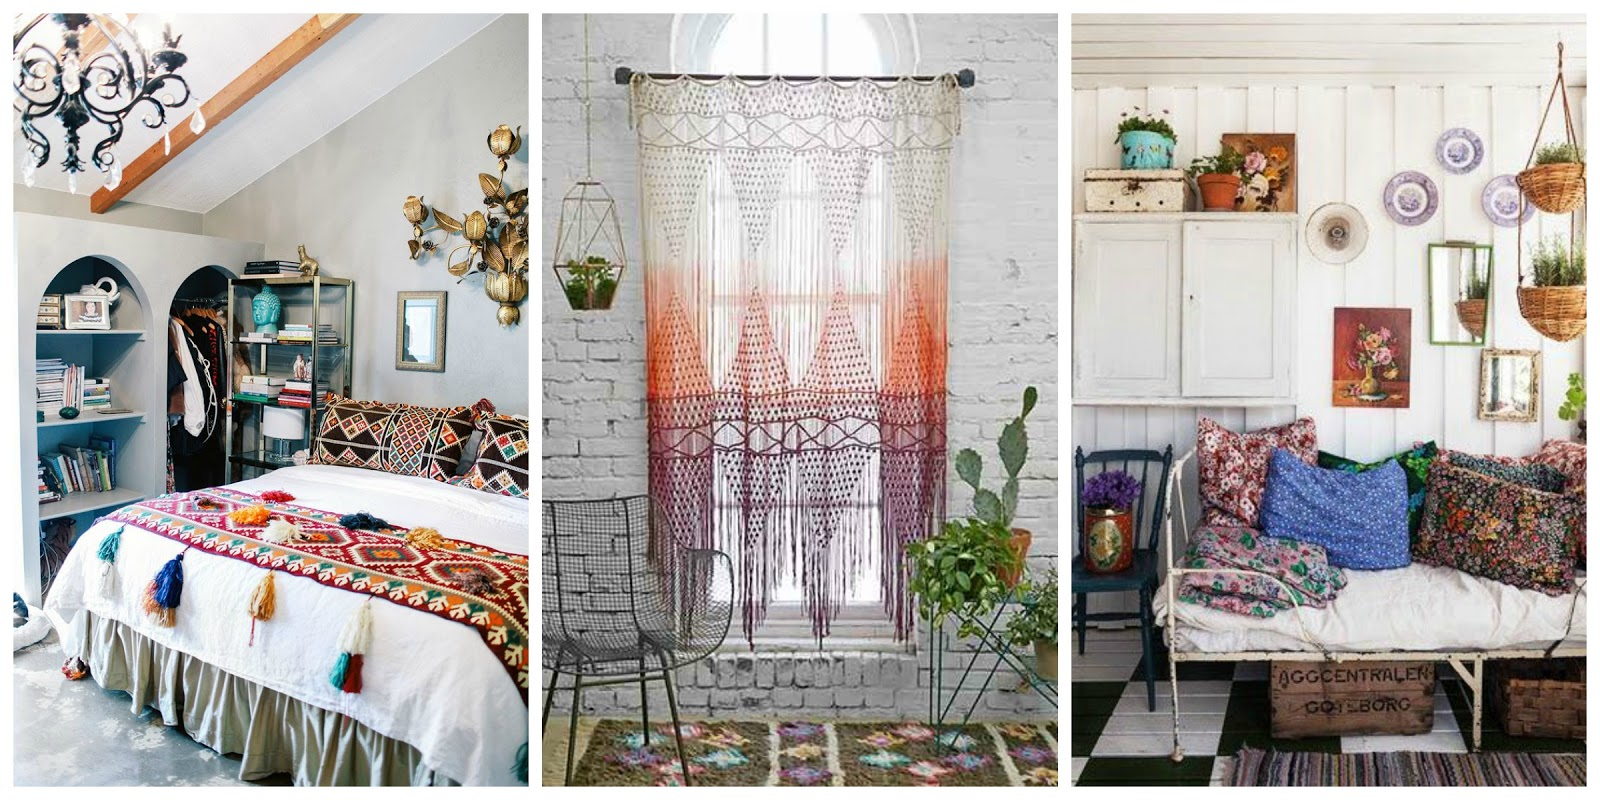 Boho Style In The Interior Luxury INSPIRACI N ESTILO BOHO CHIC